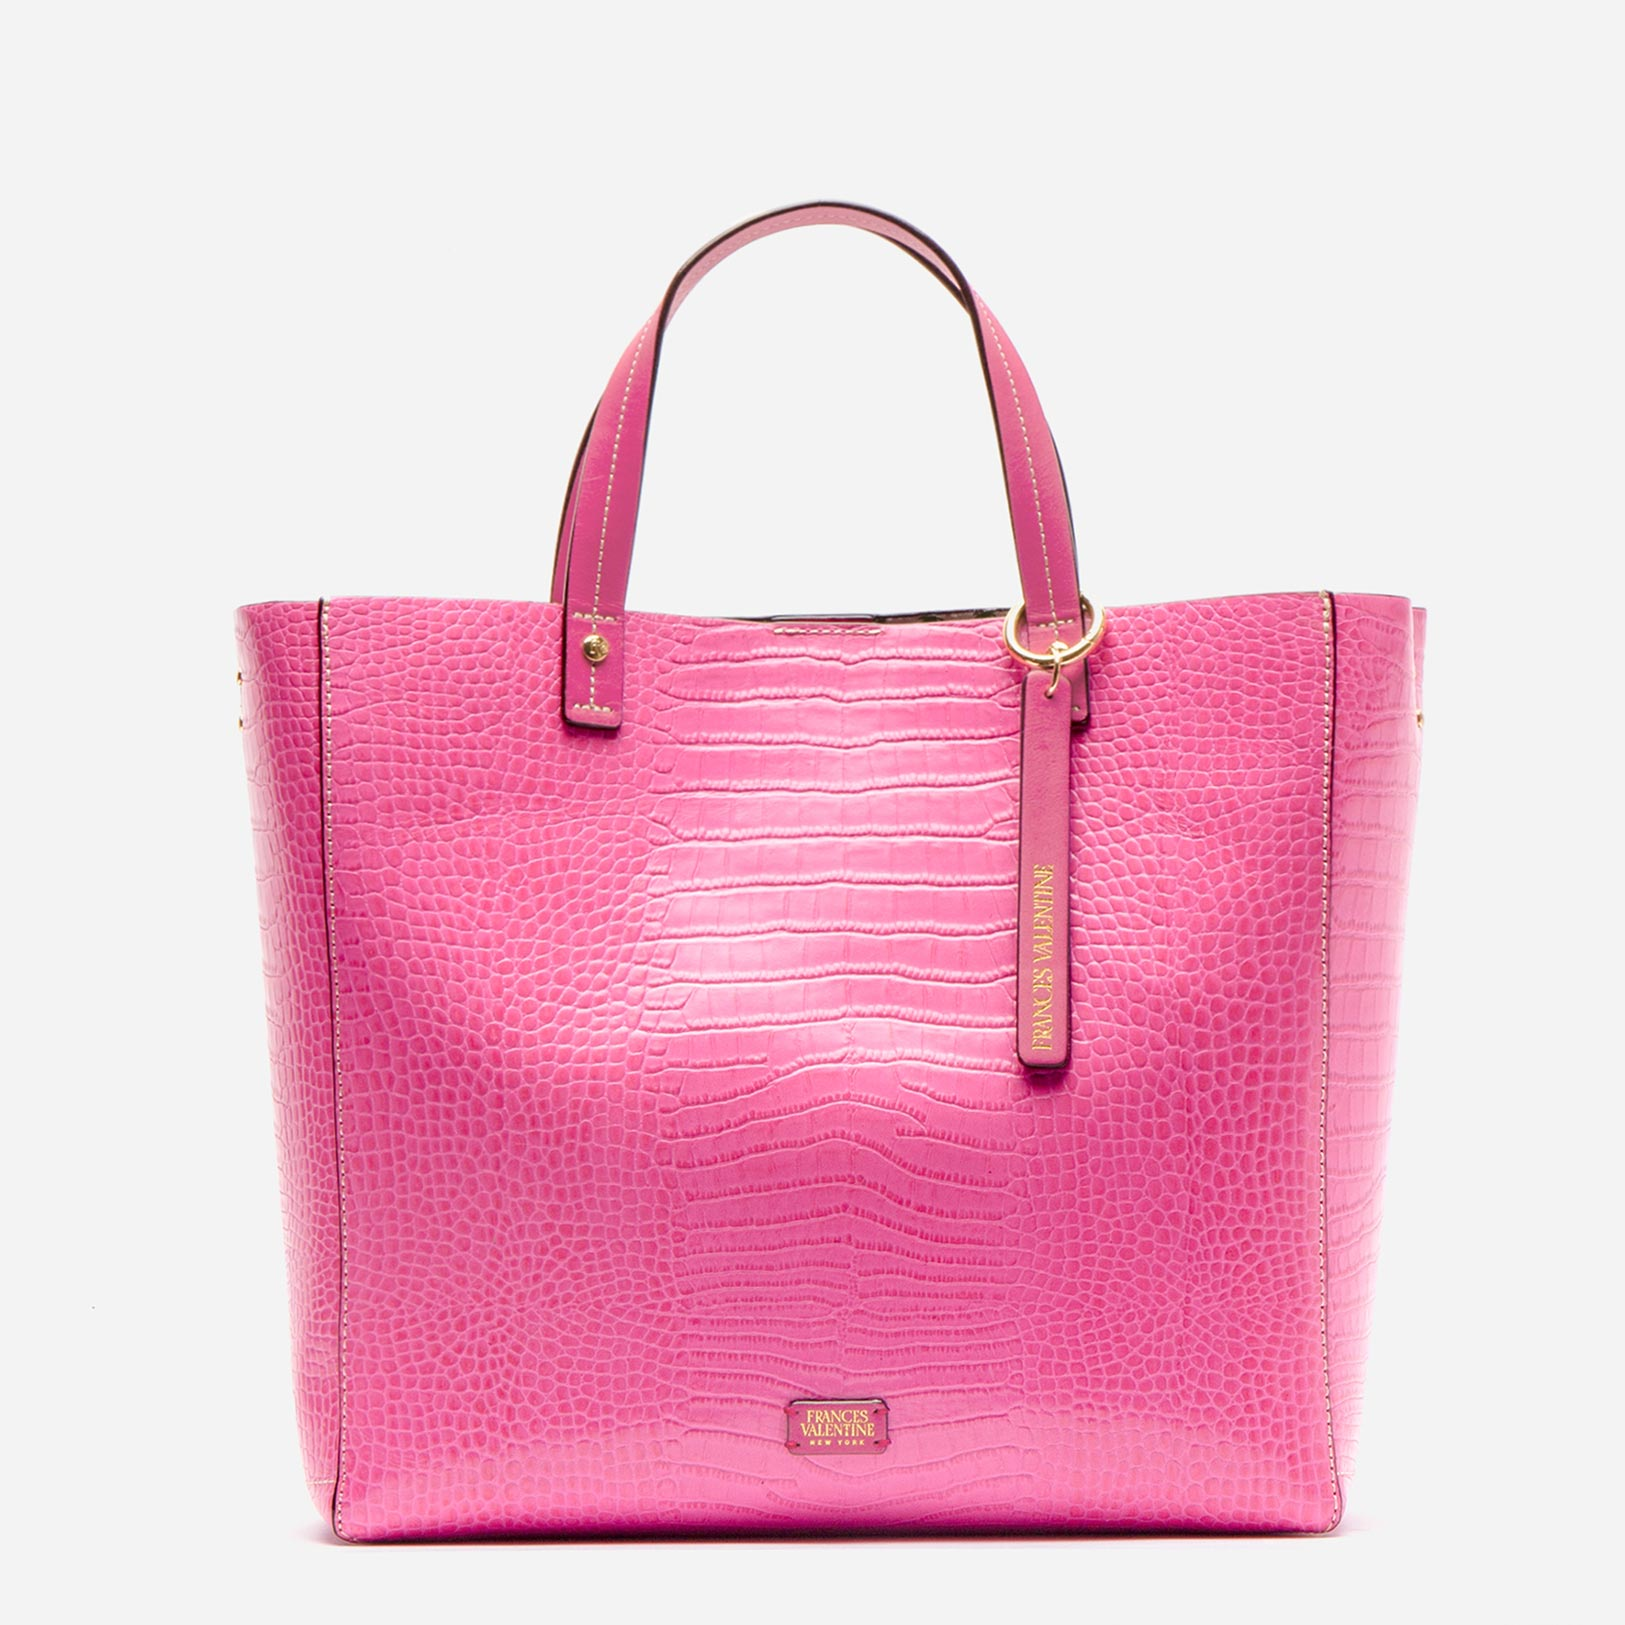 Margaret Tote Croc Embossed Leather Pink